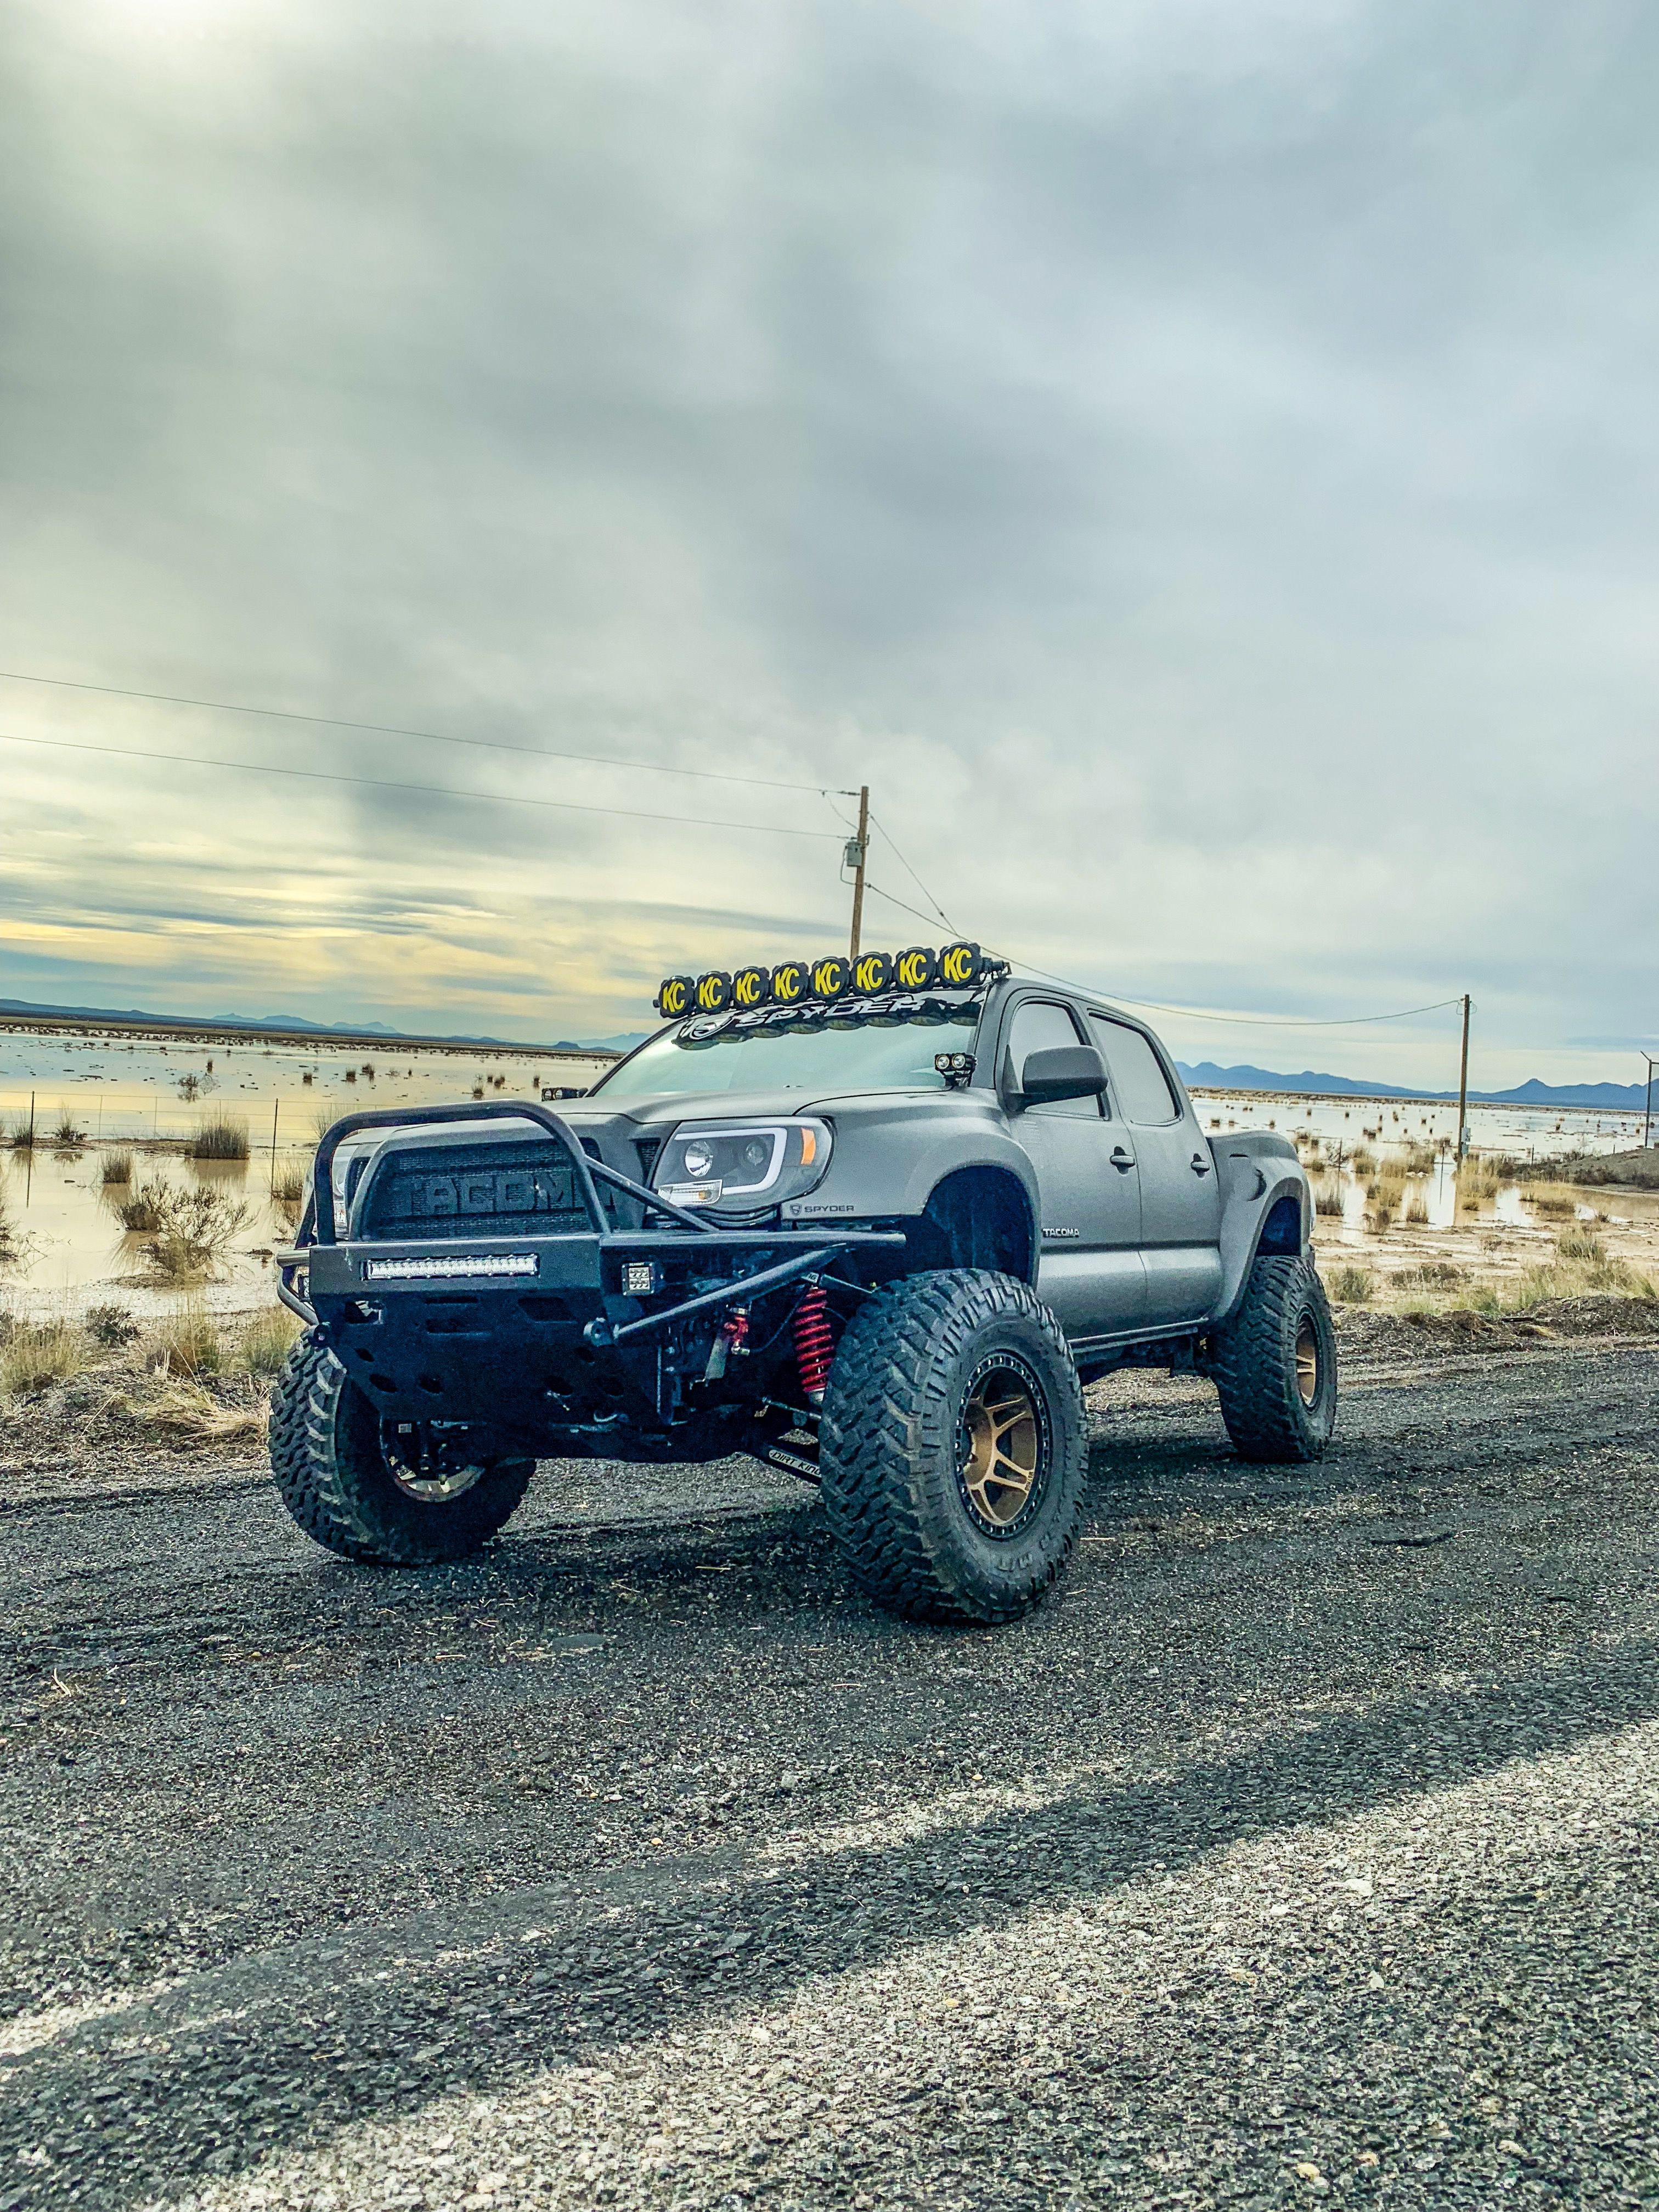 Toyota Tacoma Parts >> Pin By Tacomabeast On 2nd Gen Tacoma Toyota Tacoma Parts